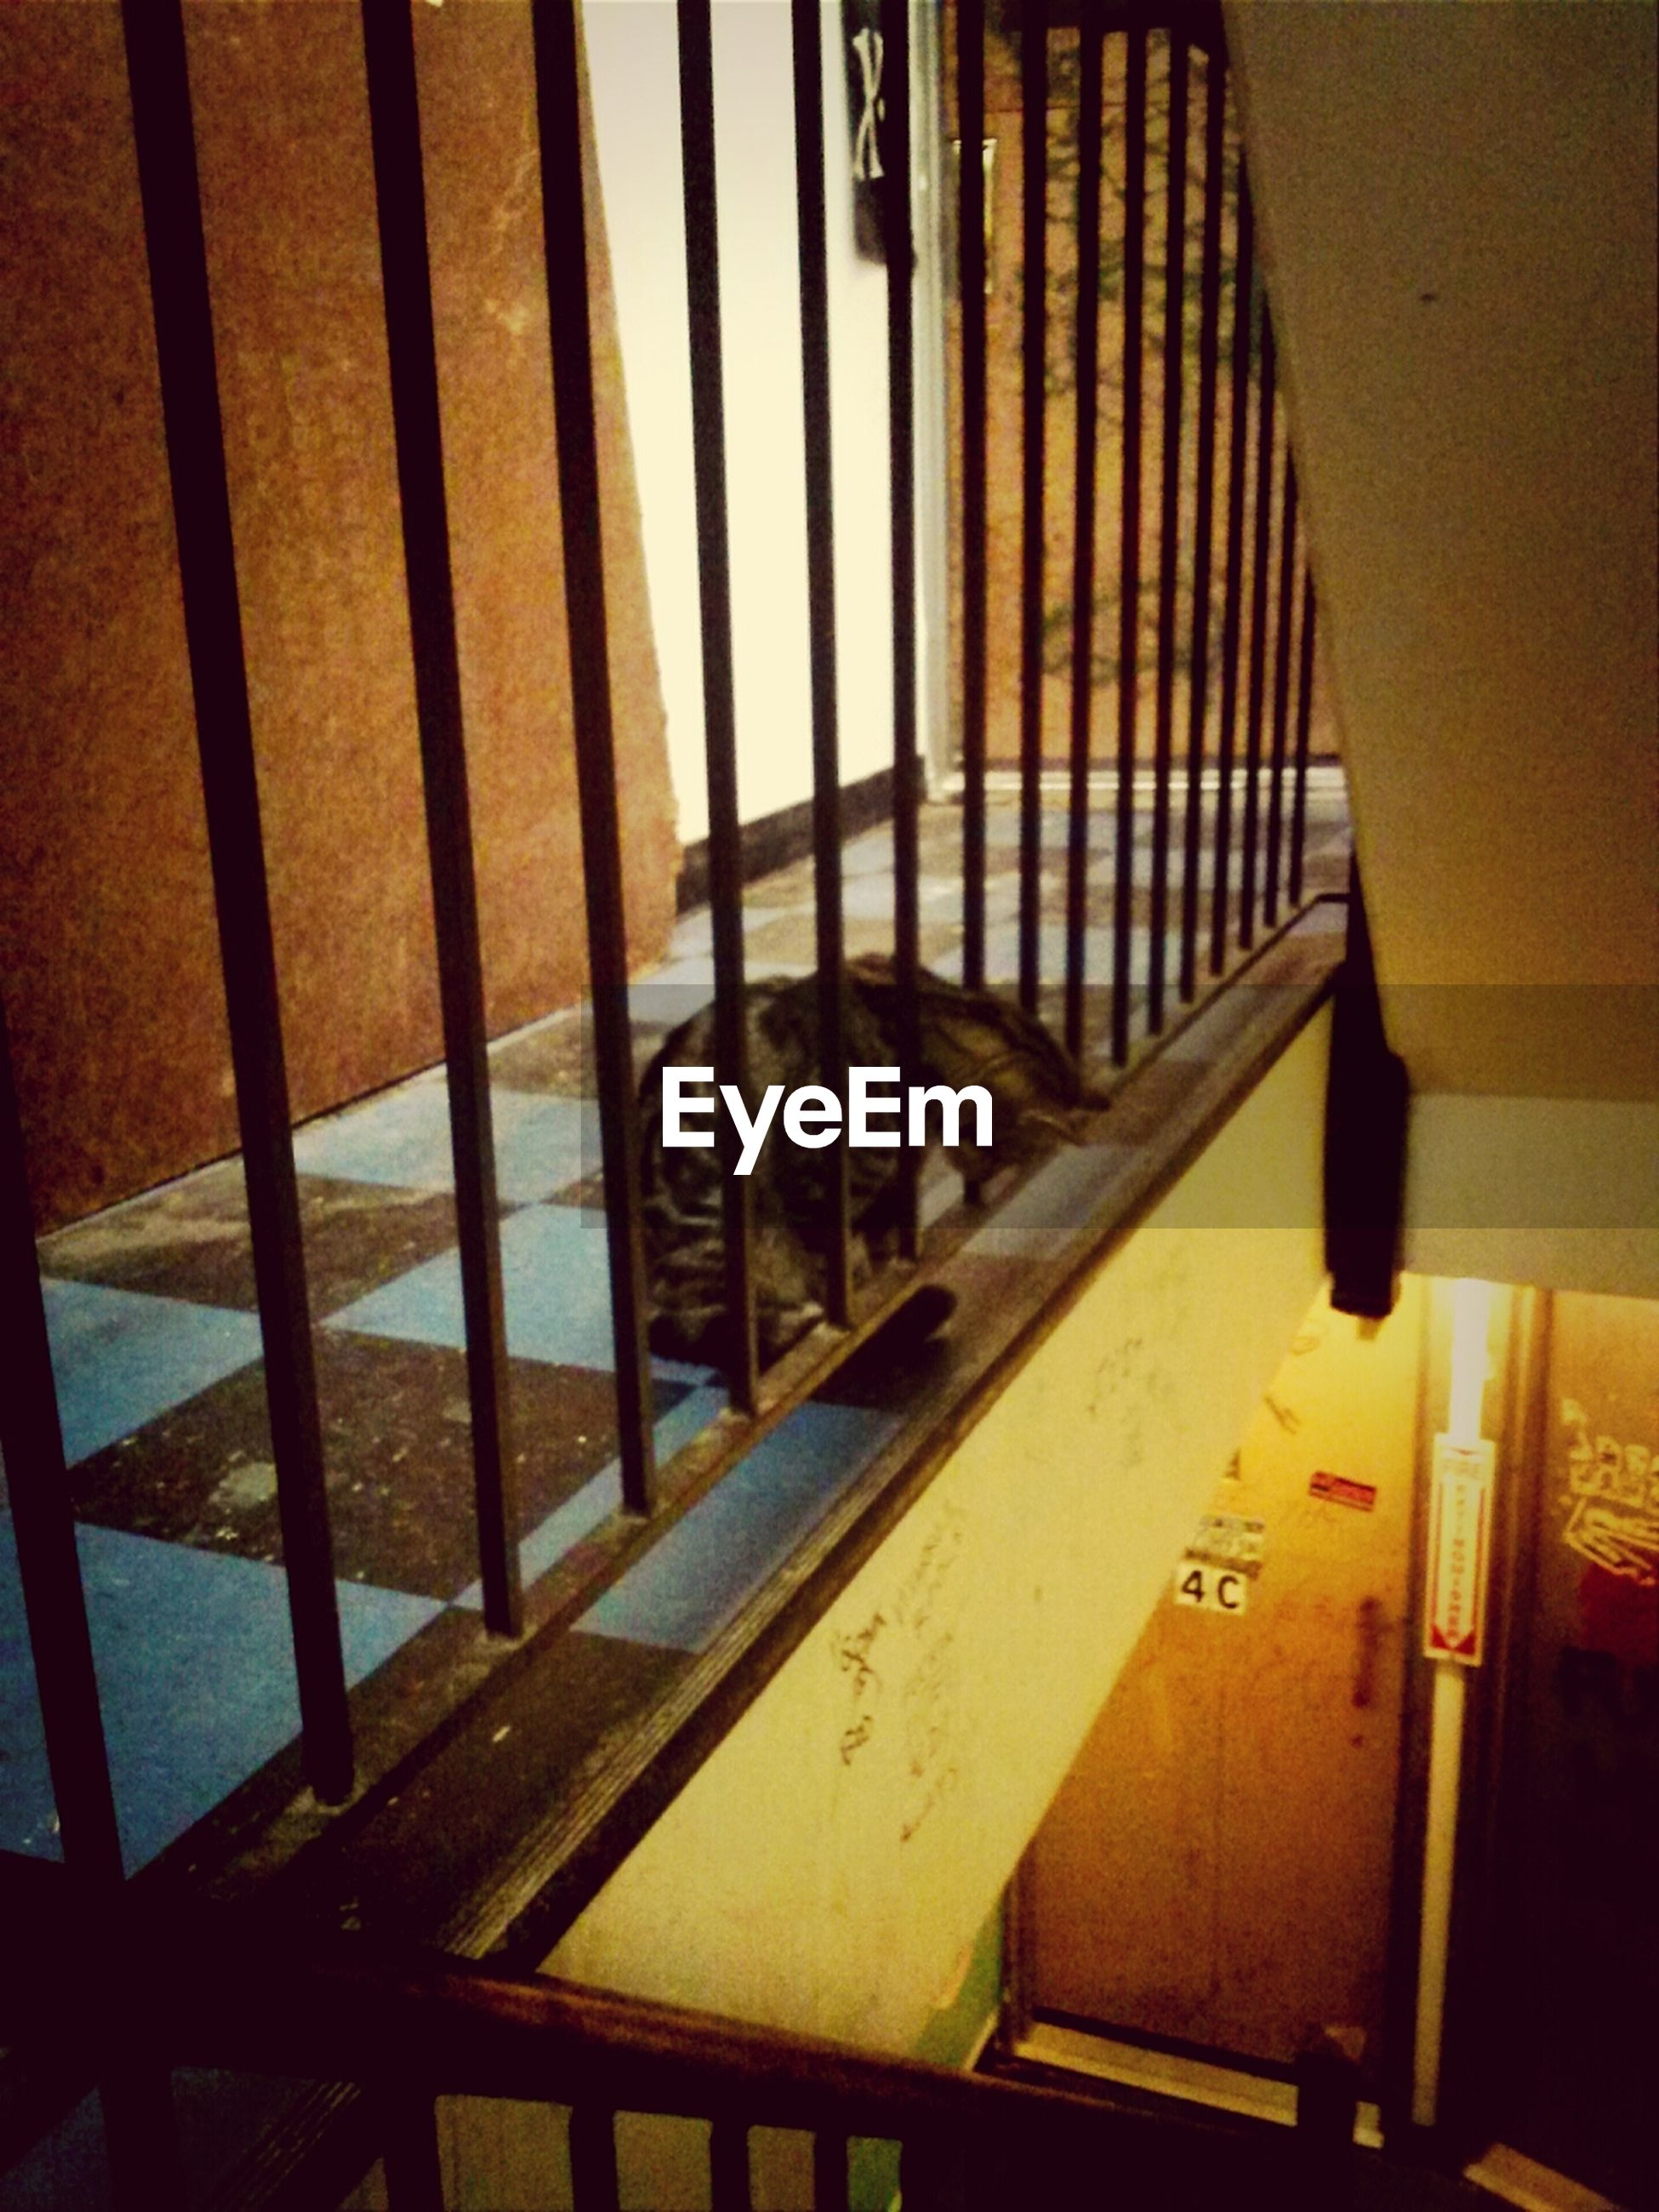 indoors, railing, architecture, built structure, high angle view, no people, yellow, metal, pattern, window, sunlight, steps, close-up, shadow, day, staircase, wall - building feature, wood - material, empty, steps and staircases